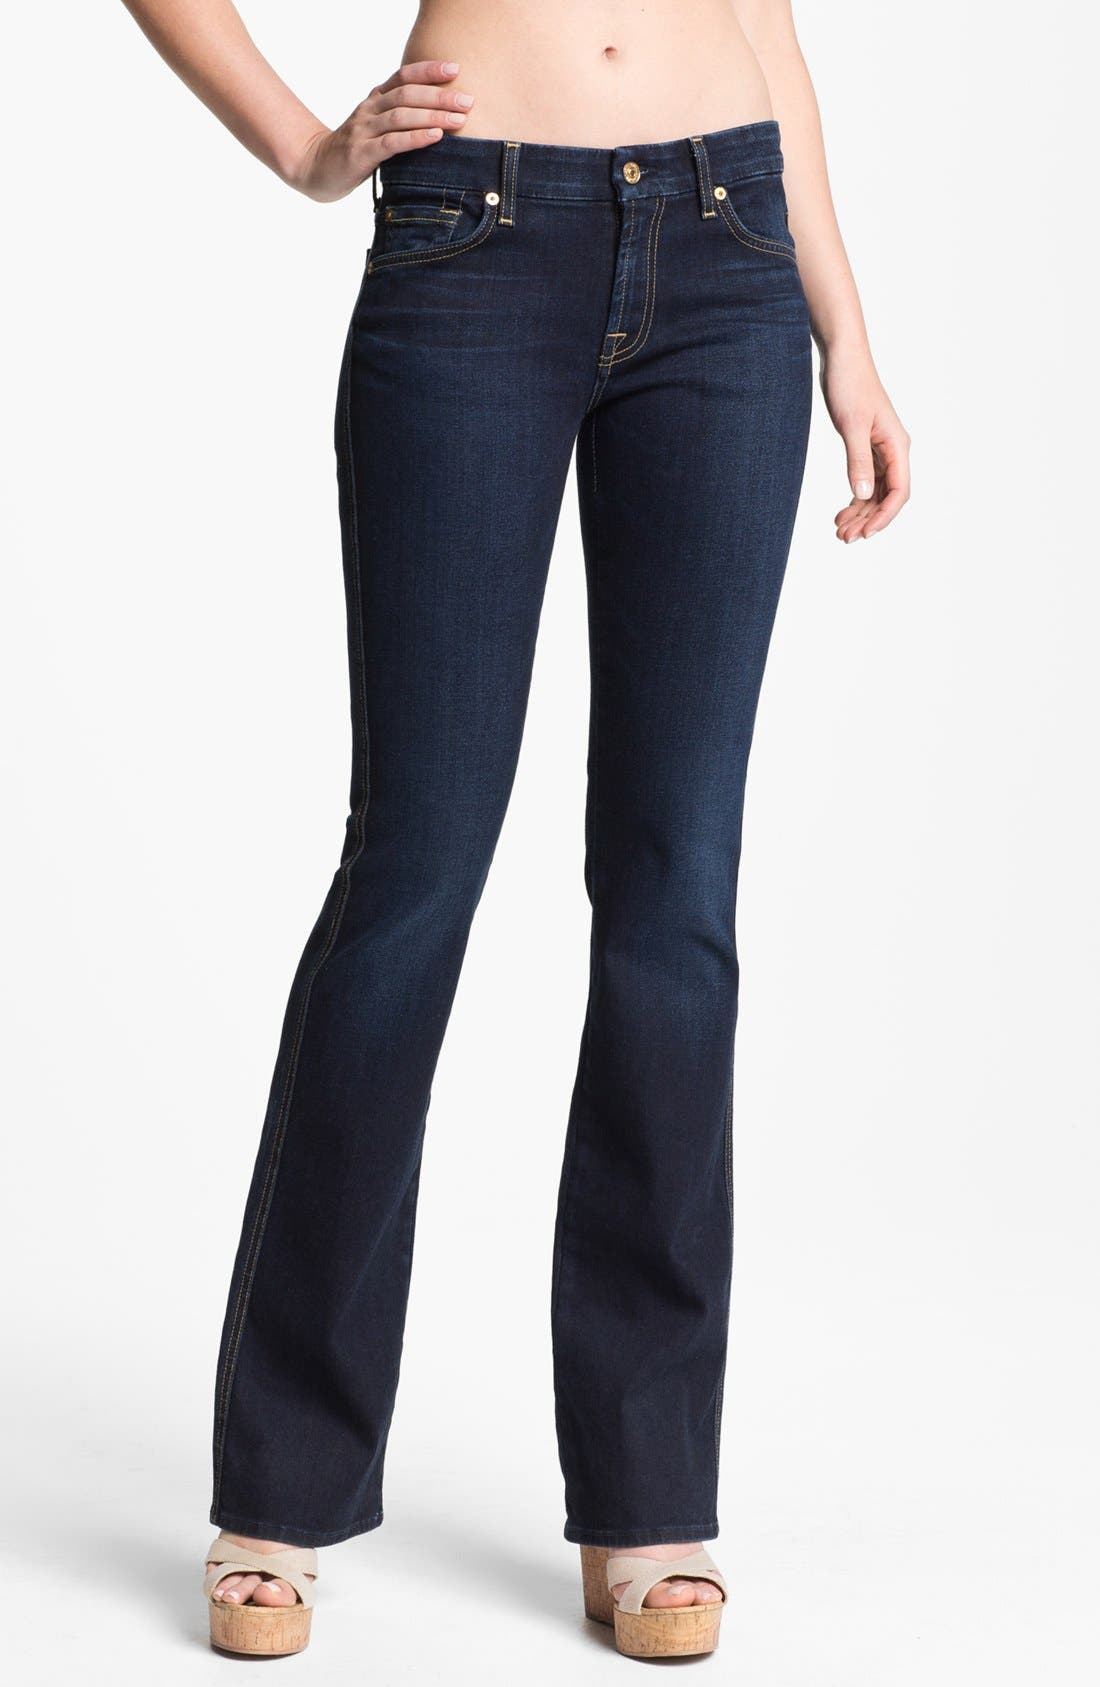 Alternate Image 1 Selected - 7 For all Mankind® 'Kimmie' Bootcut Jeans (Slim Illusion Dark Rich Blue)